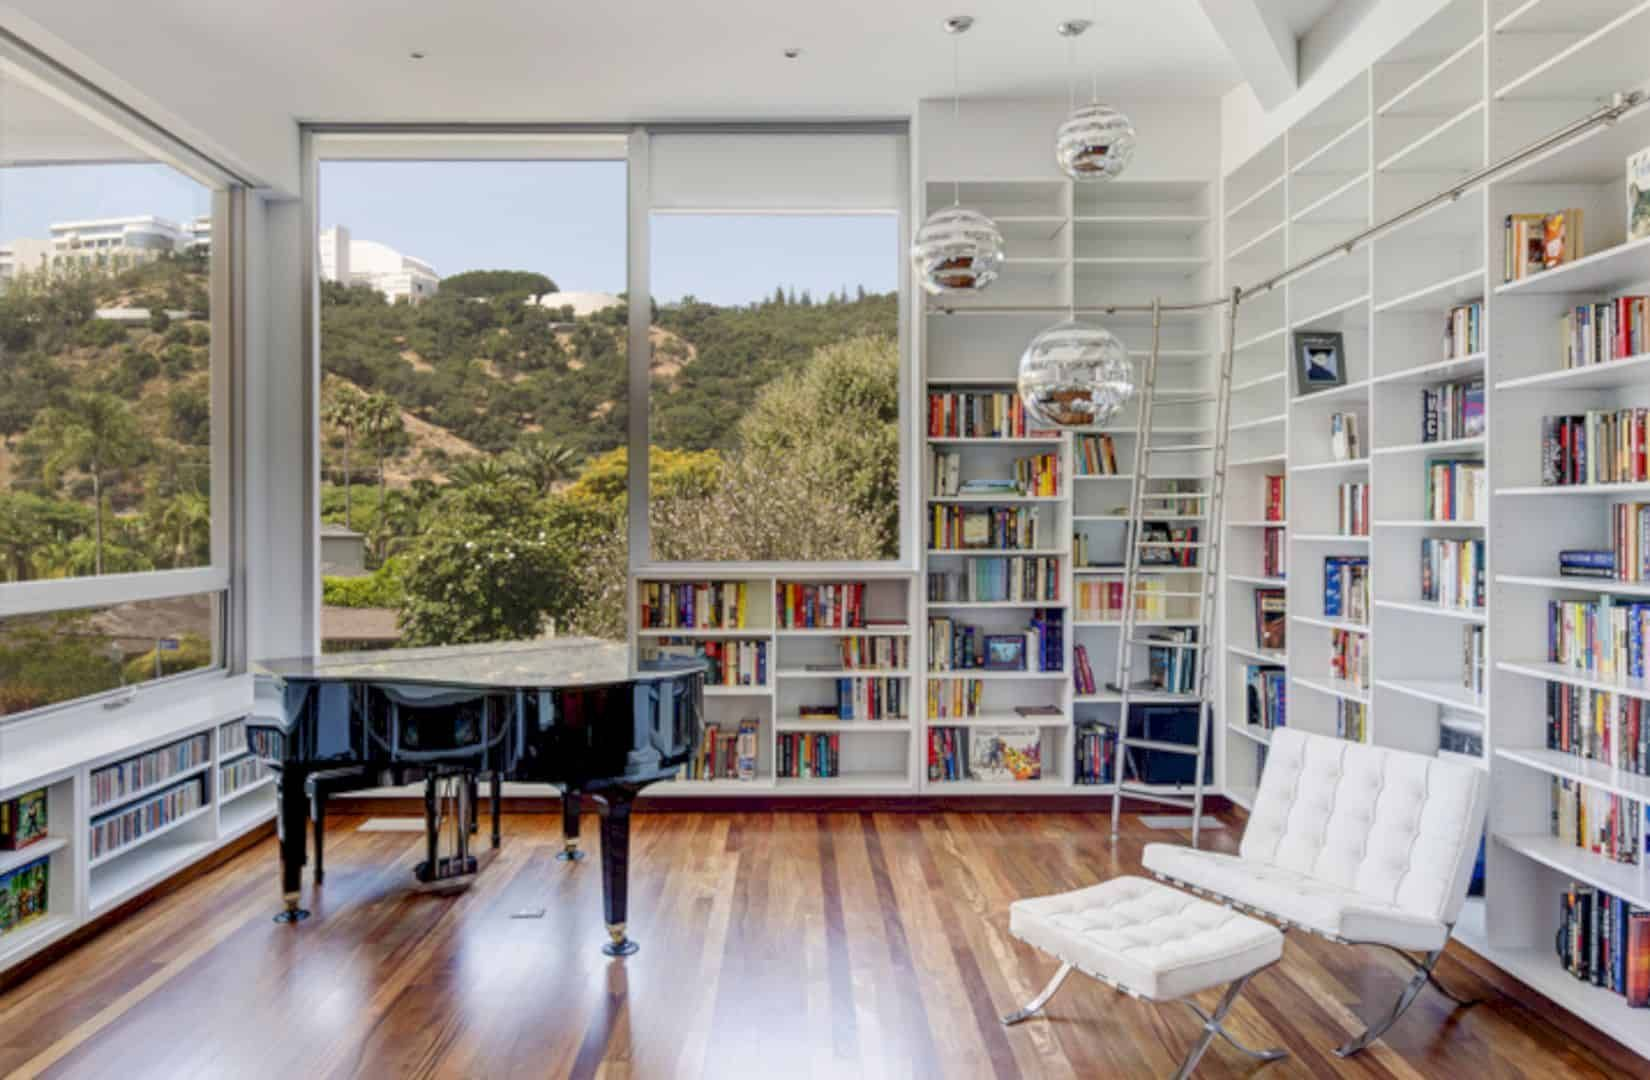 Folded View House A Distinct View Of A House With Desired Visual And Aural Privacy Home Library Rooms Home Library Design Bookshelf Design